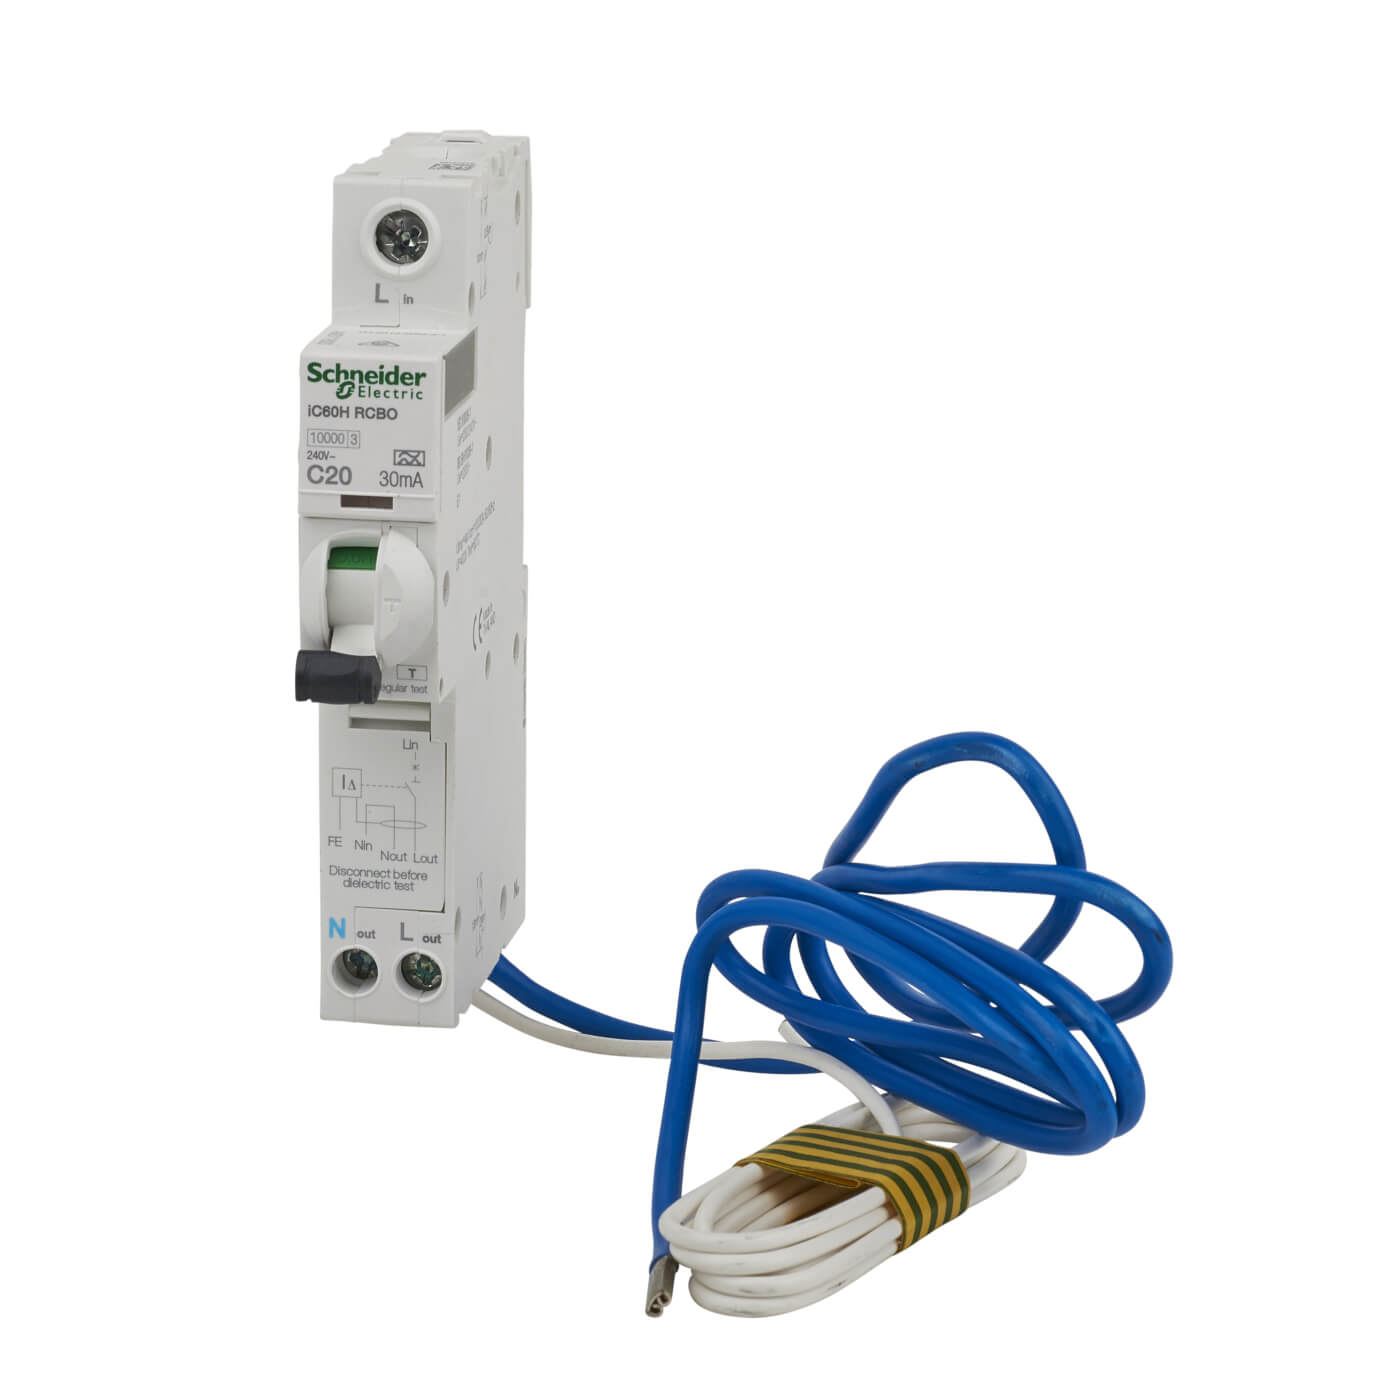 Schneider Acti 9 Isobar 20a 30ma Single Pole 3 Phase Rcbo